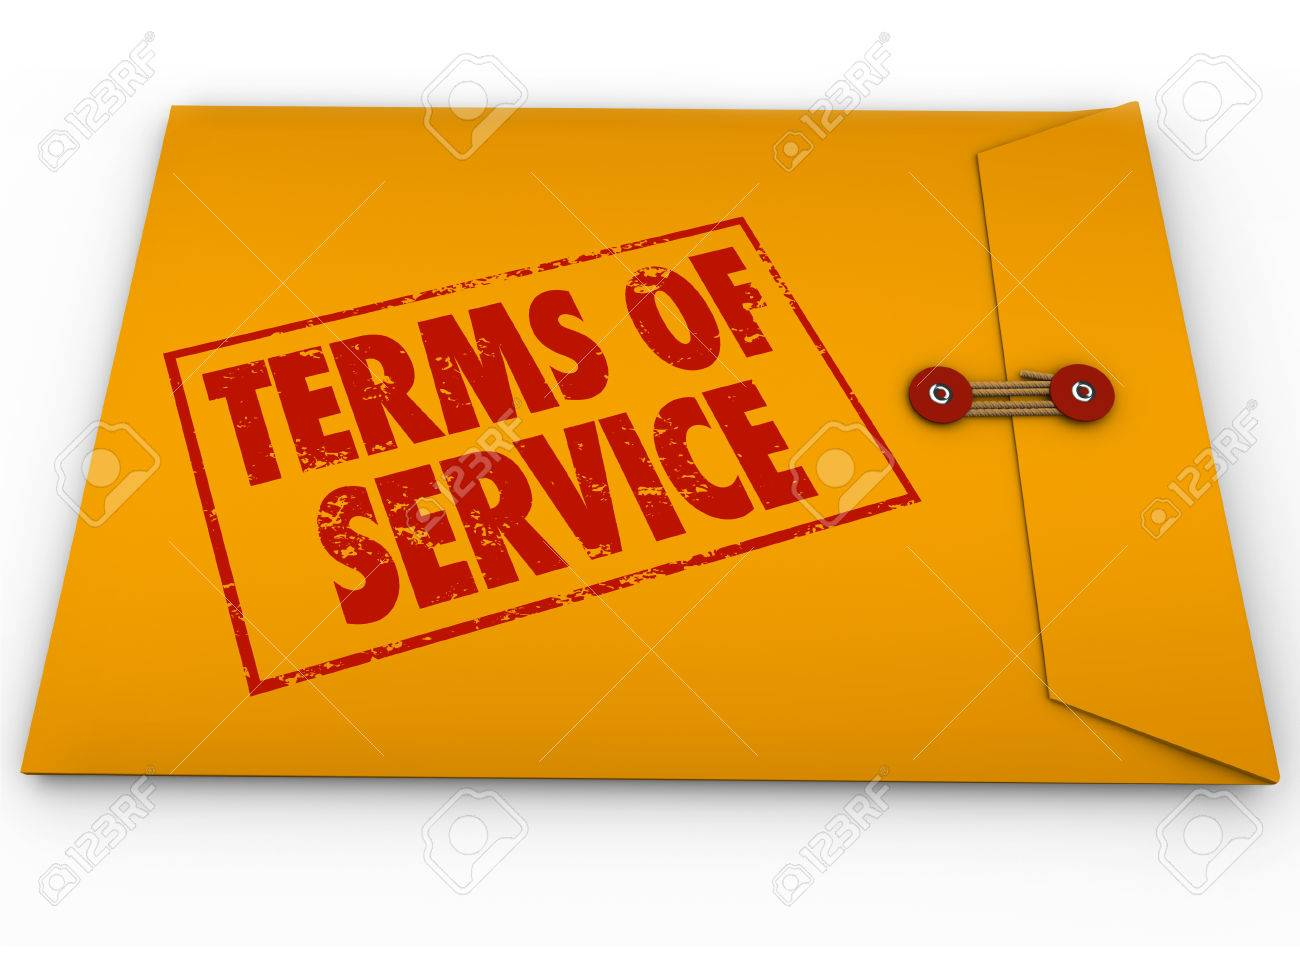 Terms Of Service Words On Stamp On Yellow Envelope To Illustrate – Words of Agreement